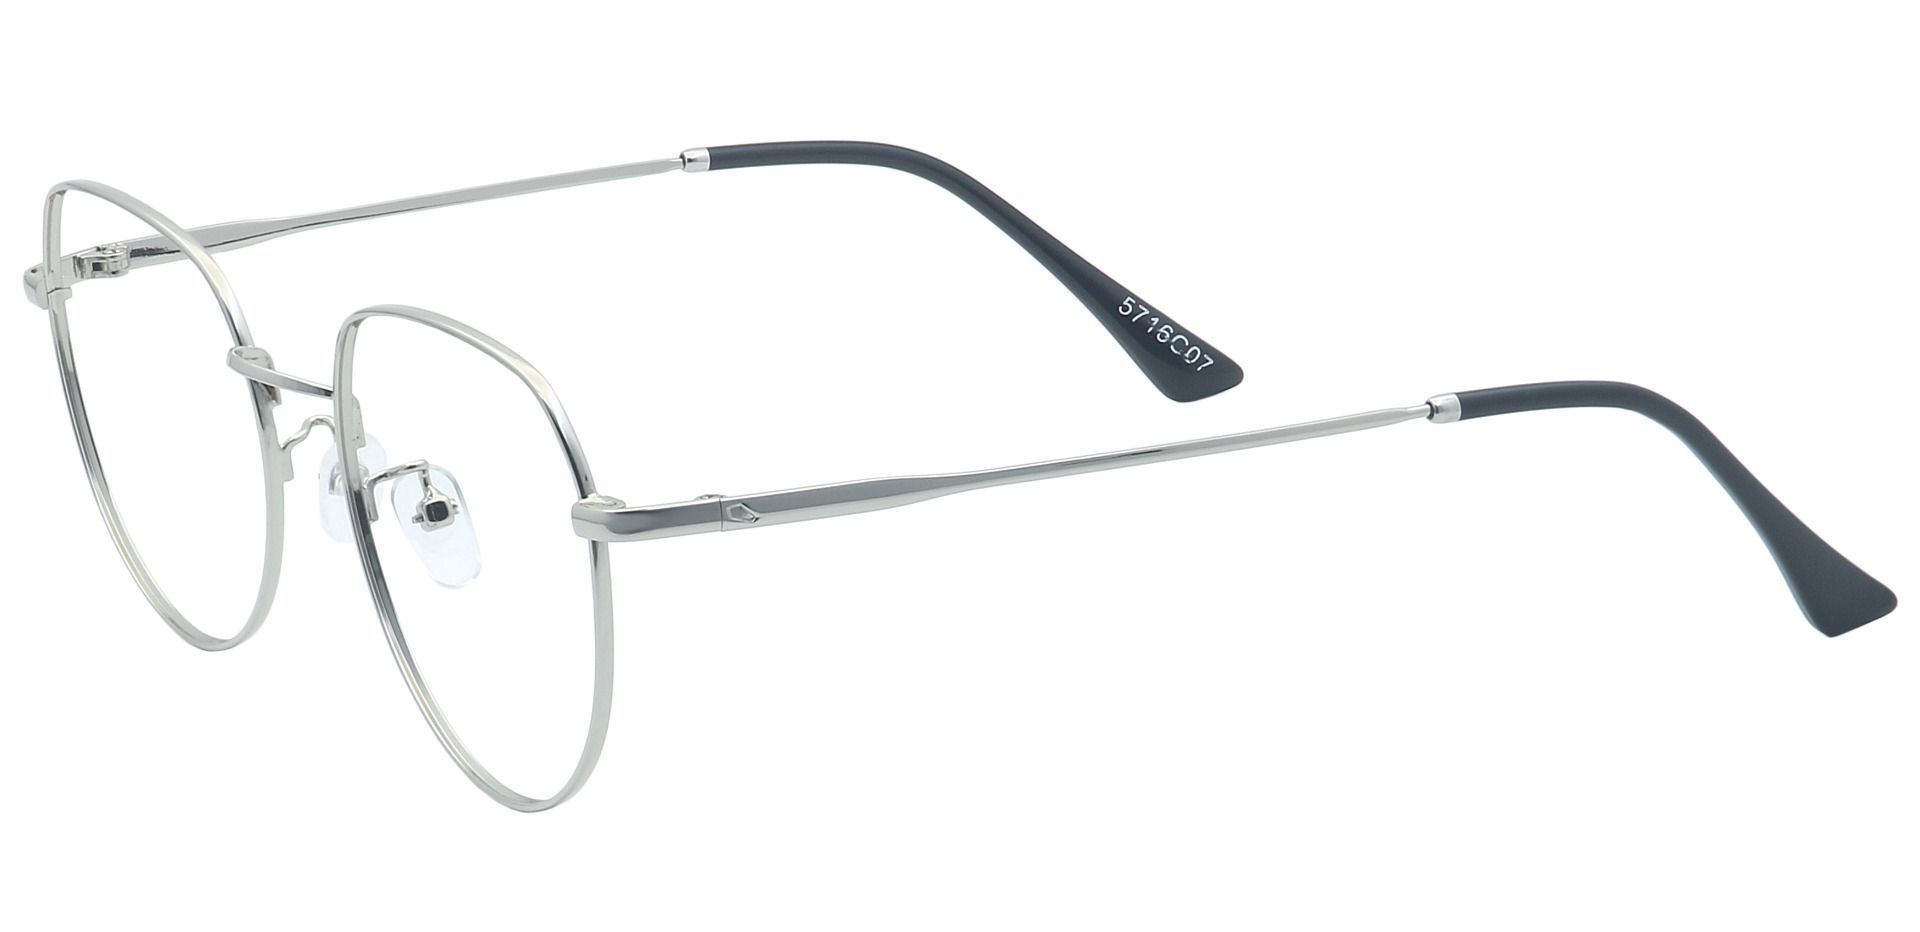 Maren Round Reading Glasses - Clear